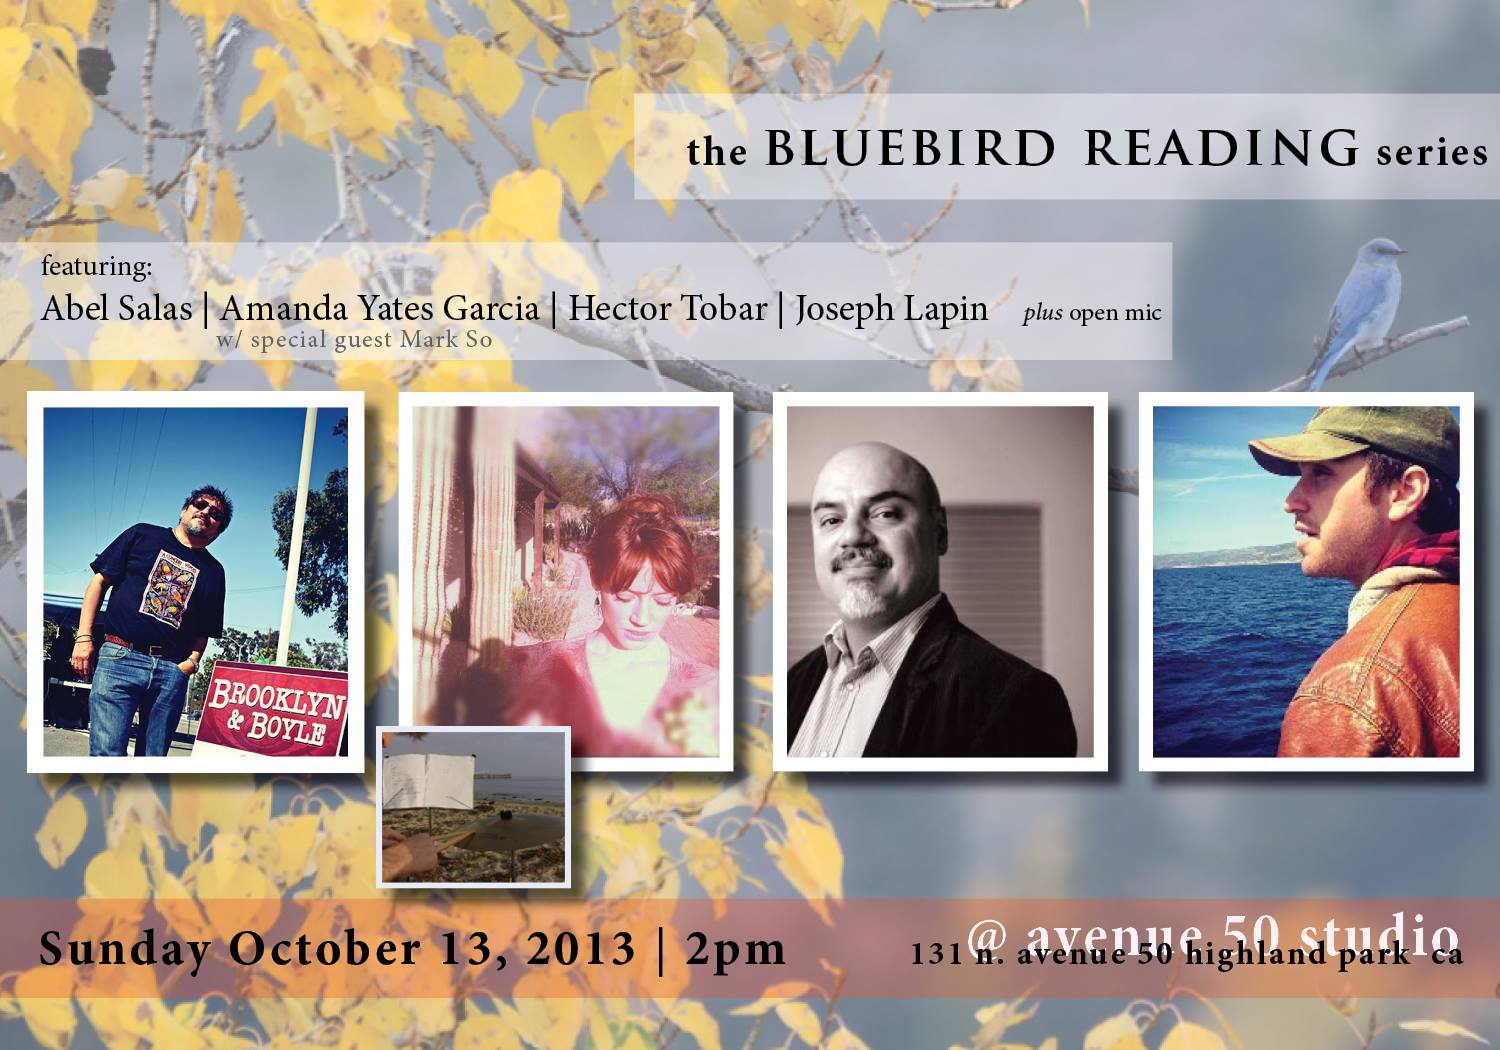 Bluebird-Flyer-2013Oct13